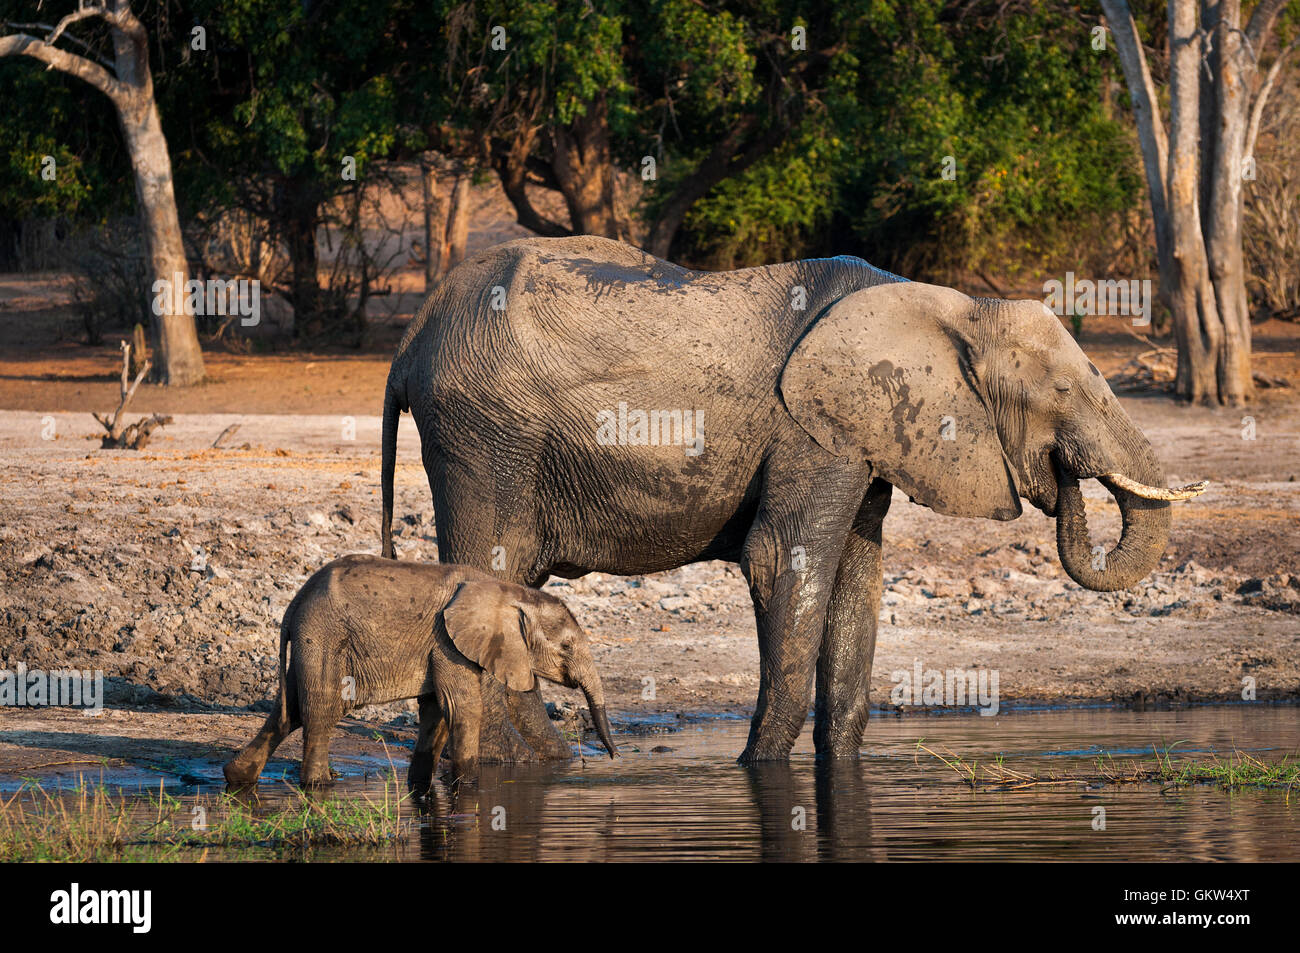 One elephant and its cub drinking water in the Chobe River, Chobe National Park, in Botswana, Africa Stock Photo